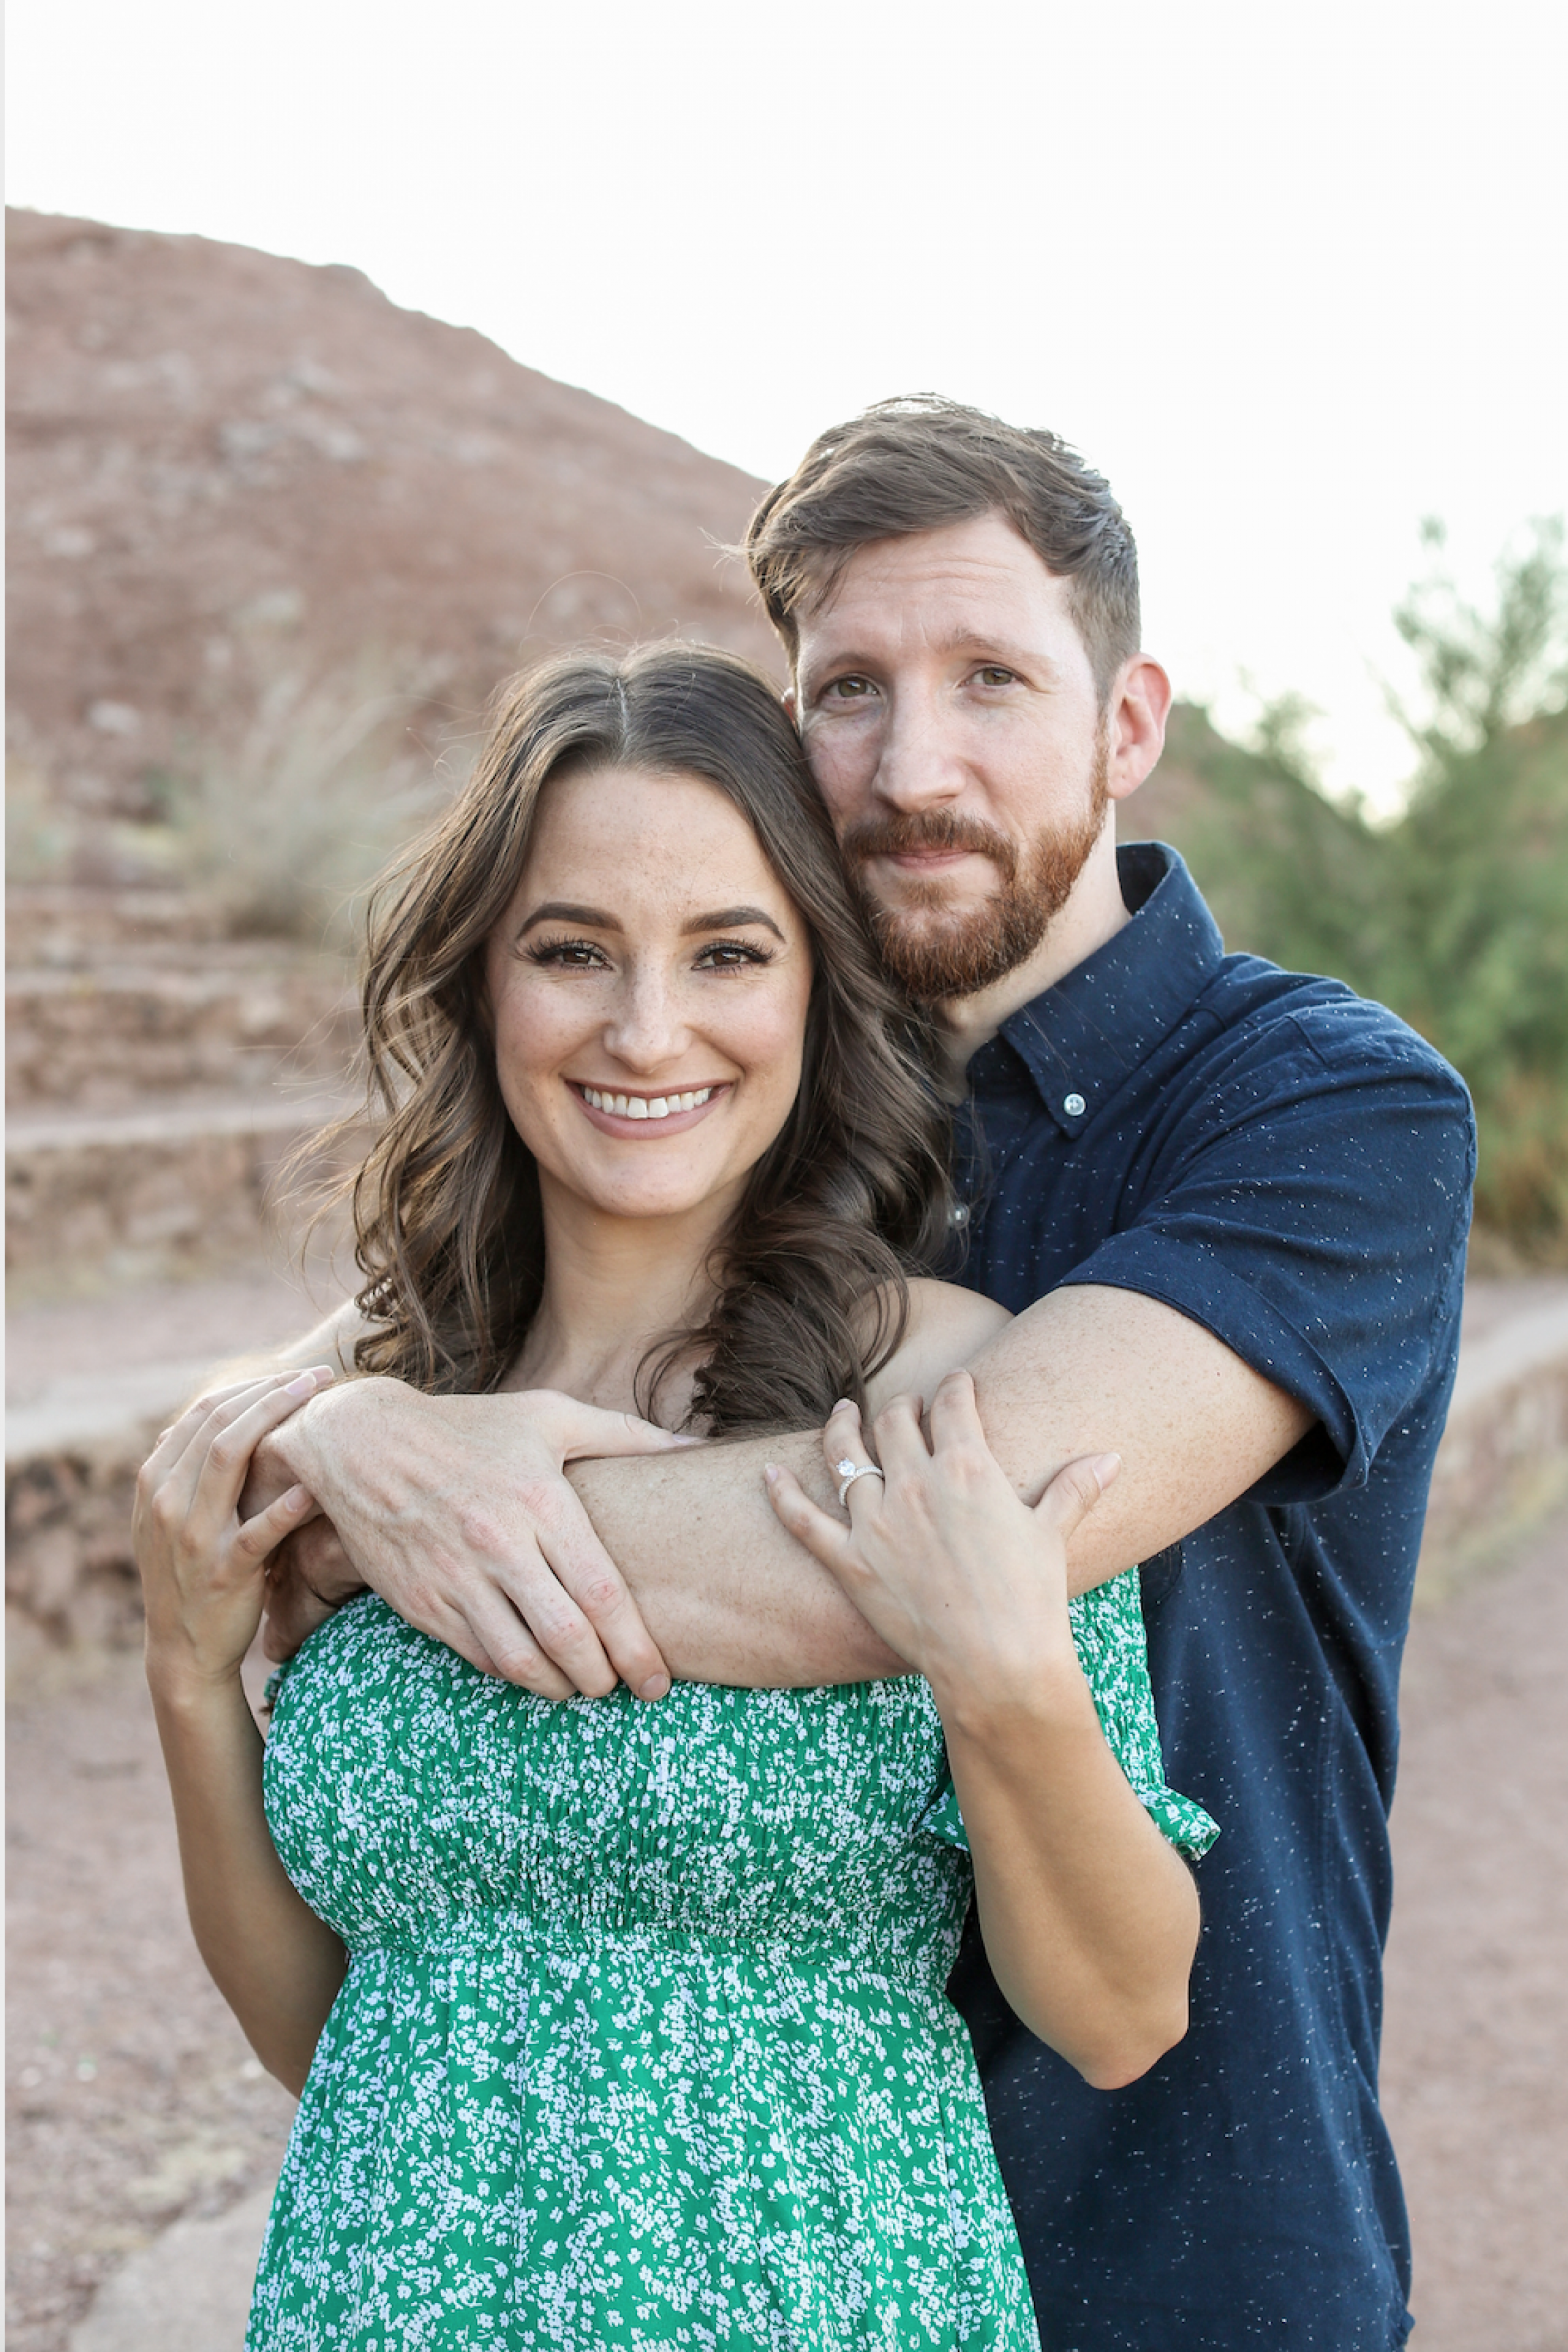 Katie Bock and Scott Davis of Arizona postponed their wedding until later this year as a result of the COVID-19 pandemic.